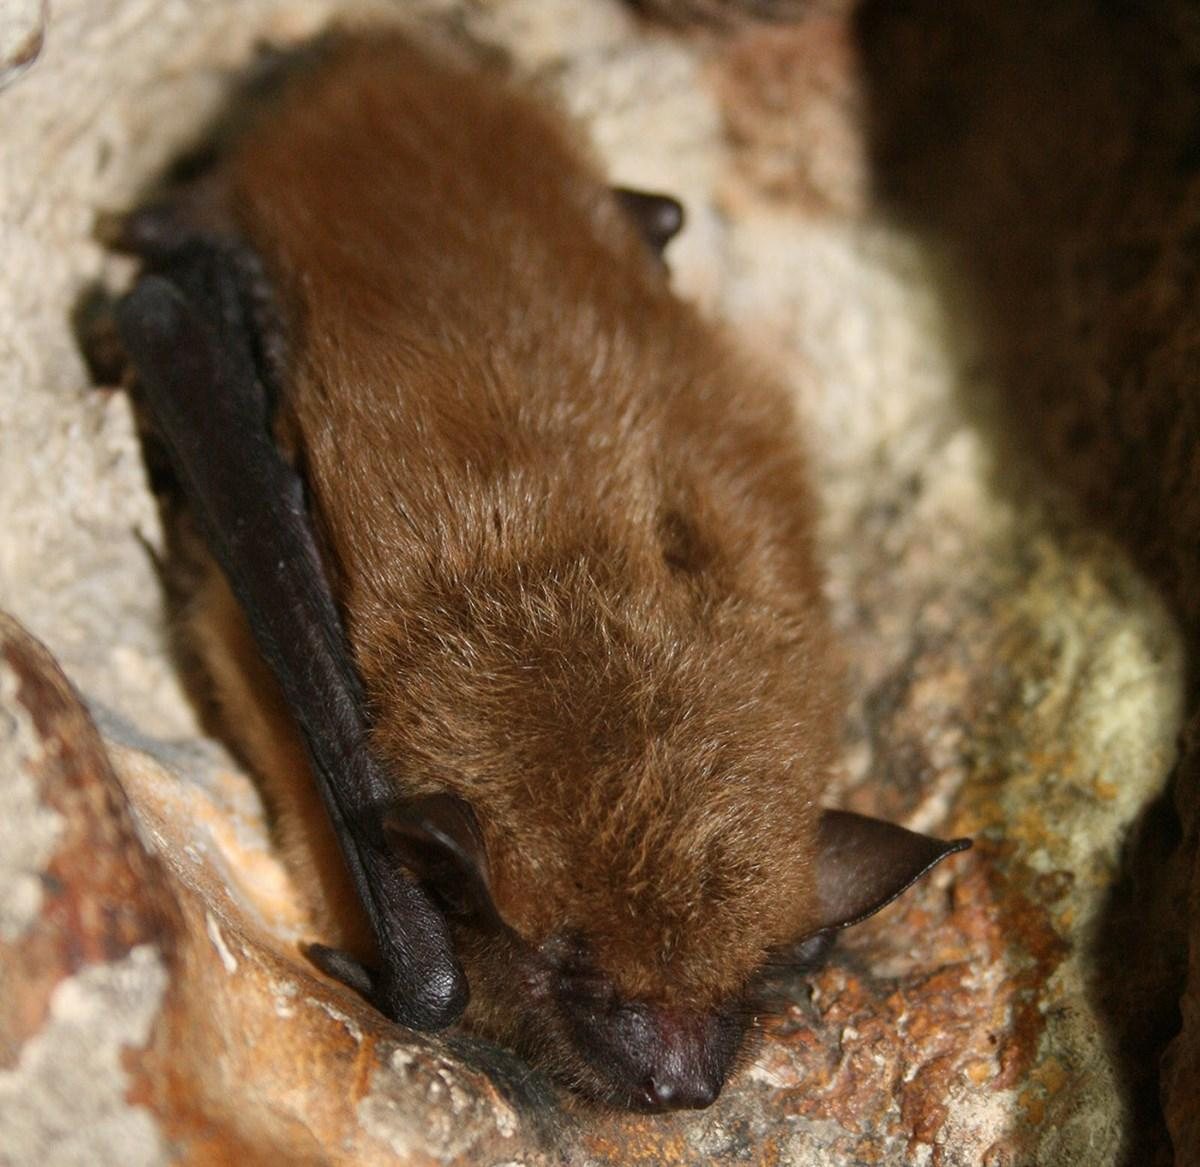 Big Brown Bat at rest